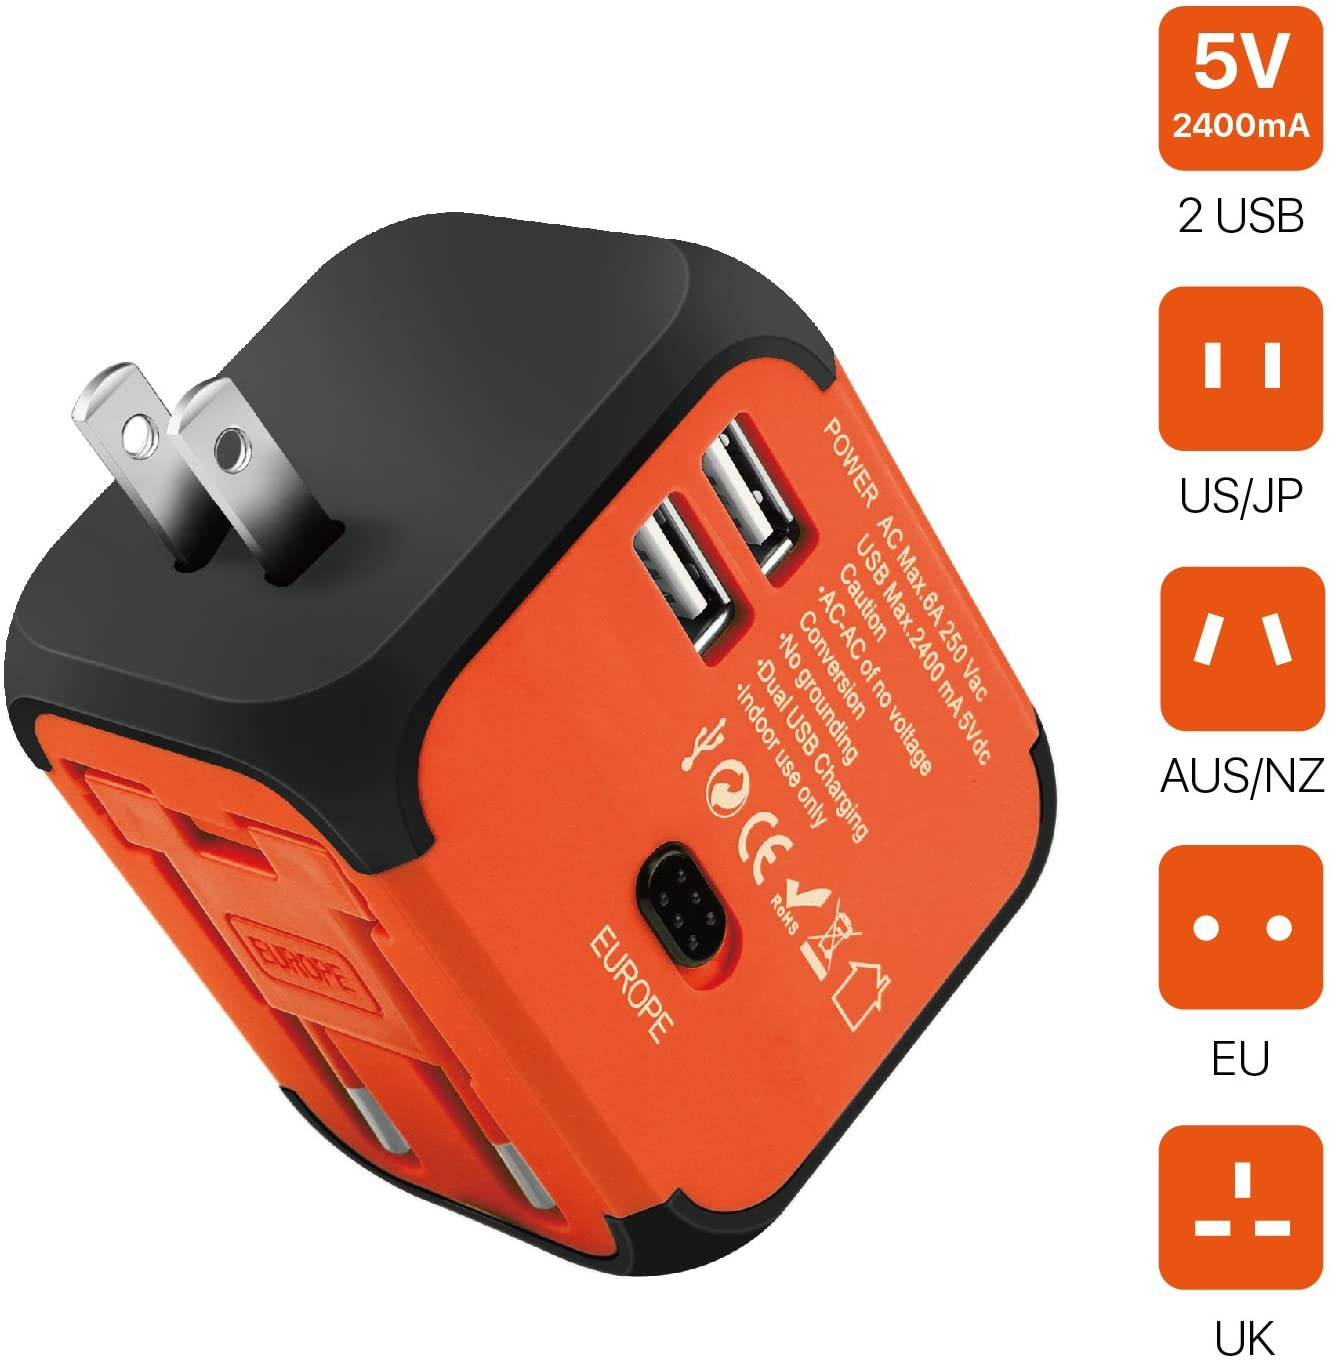 TNP International Universal Power Adapter Converter with 2 USB Charging Ports - All in One Travel Worldwide Plug Built-in Spare Fuse AC Socket Wall Outlet for US, EU, UK, AU, CN 150 Countries (Orange)